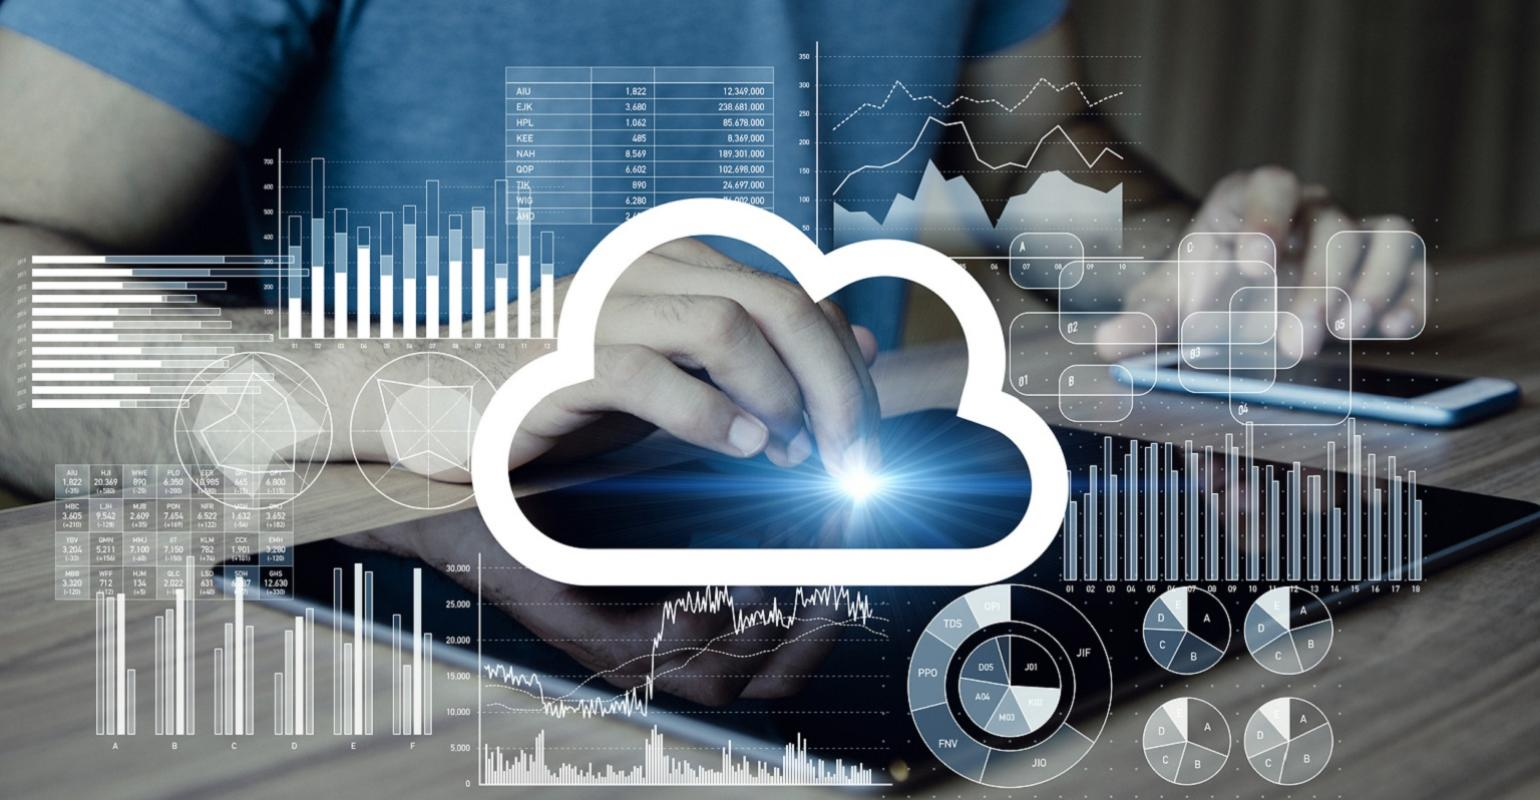 WILL FATE OF CLOUD COMPUTING CHANGE DURING THE CURRENT PANDEMIC?